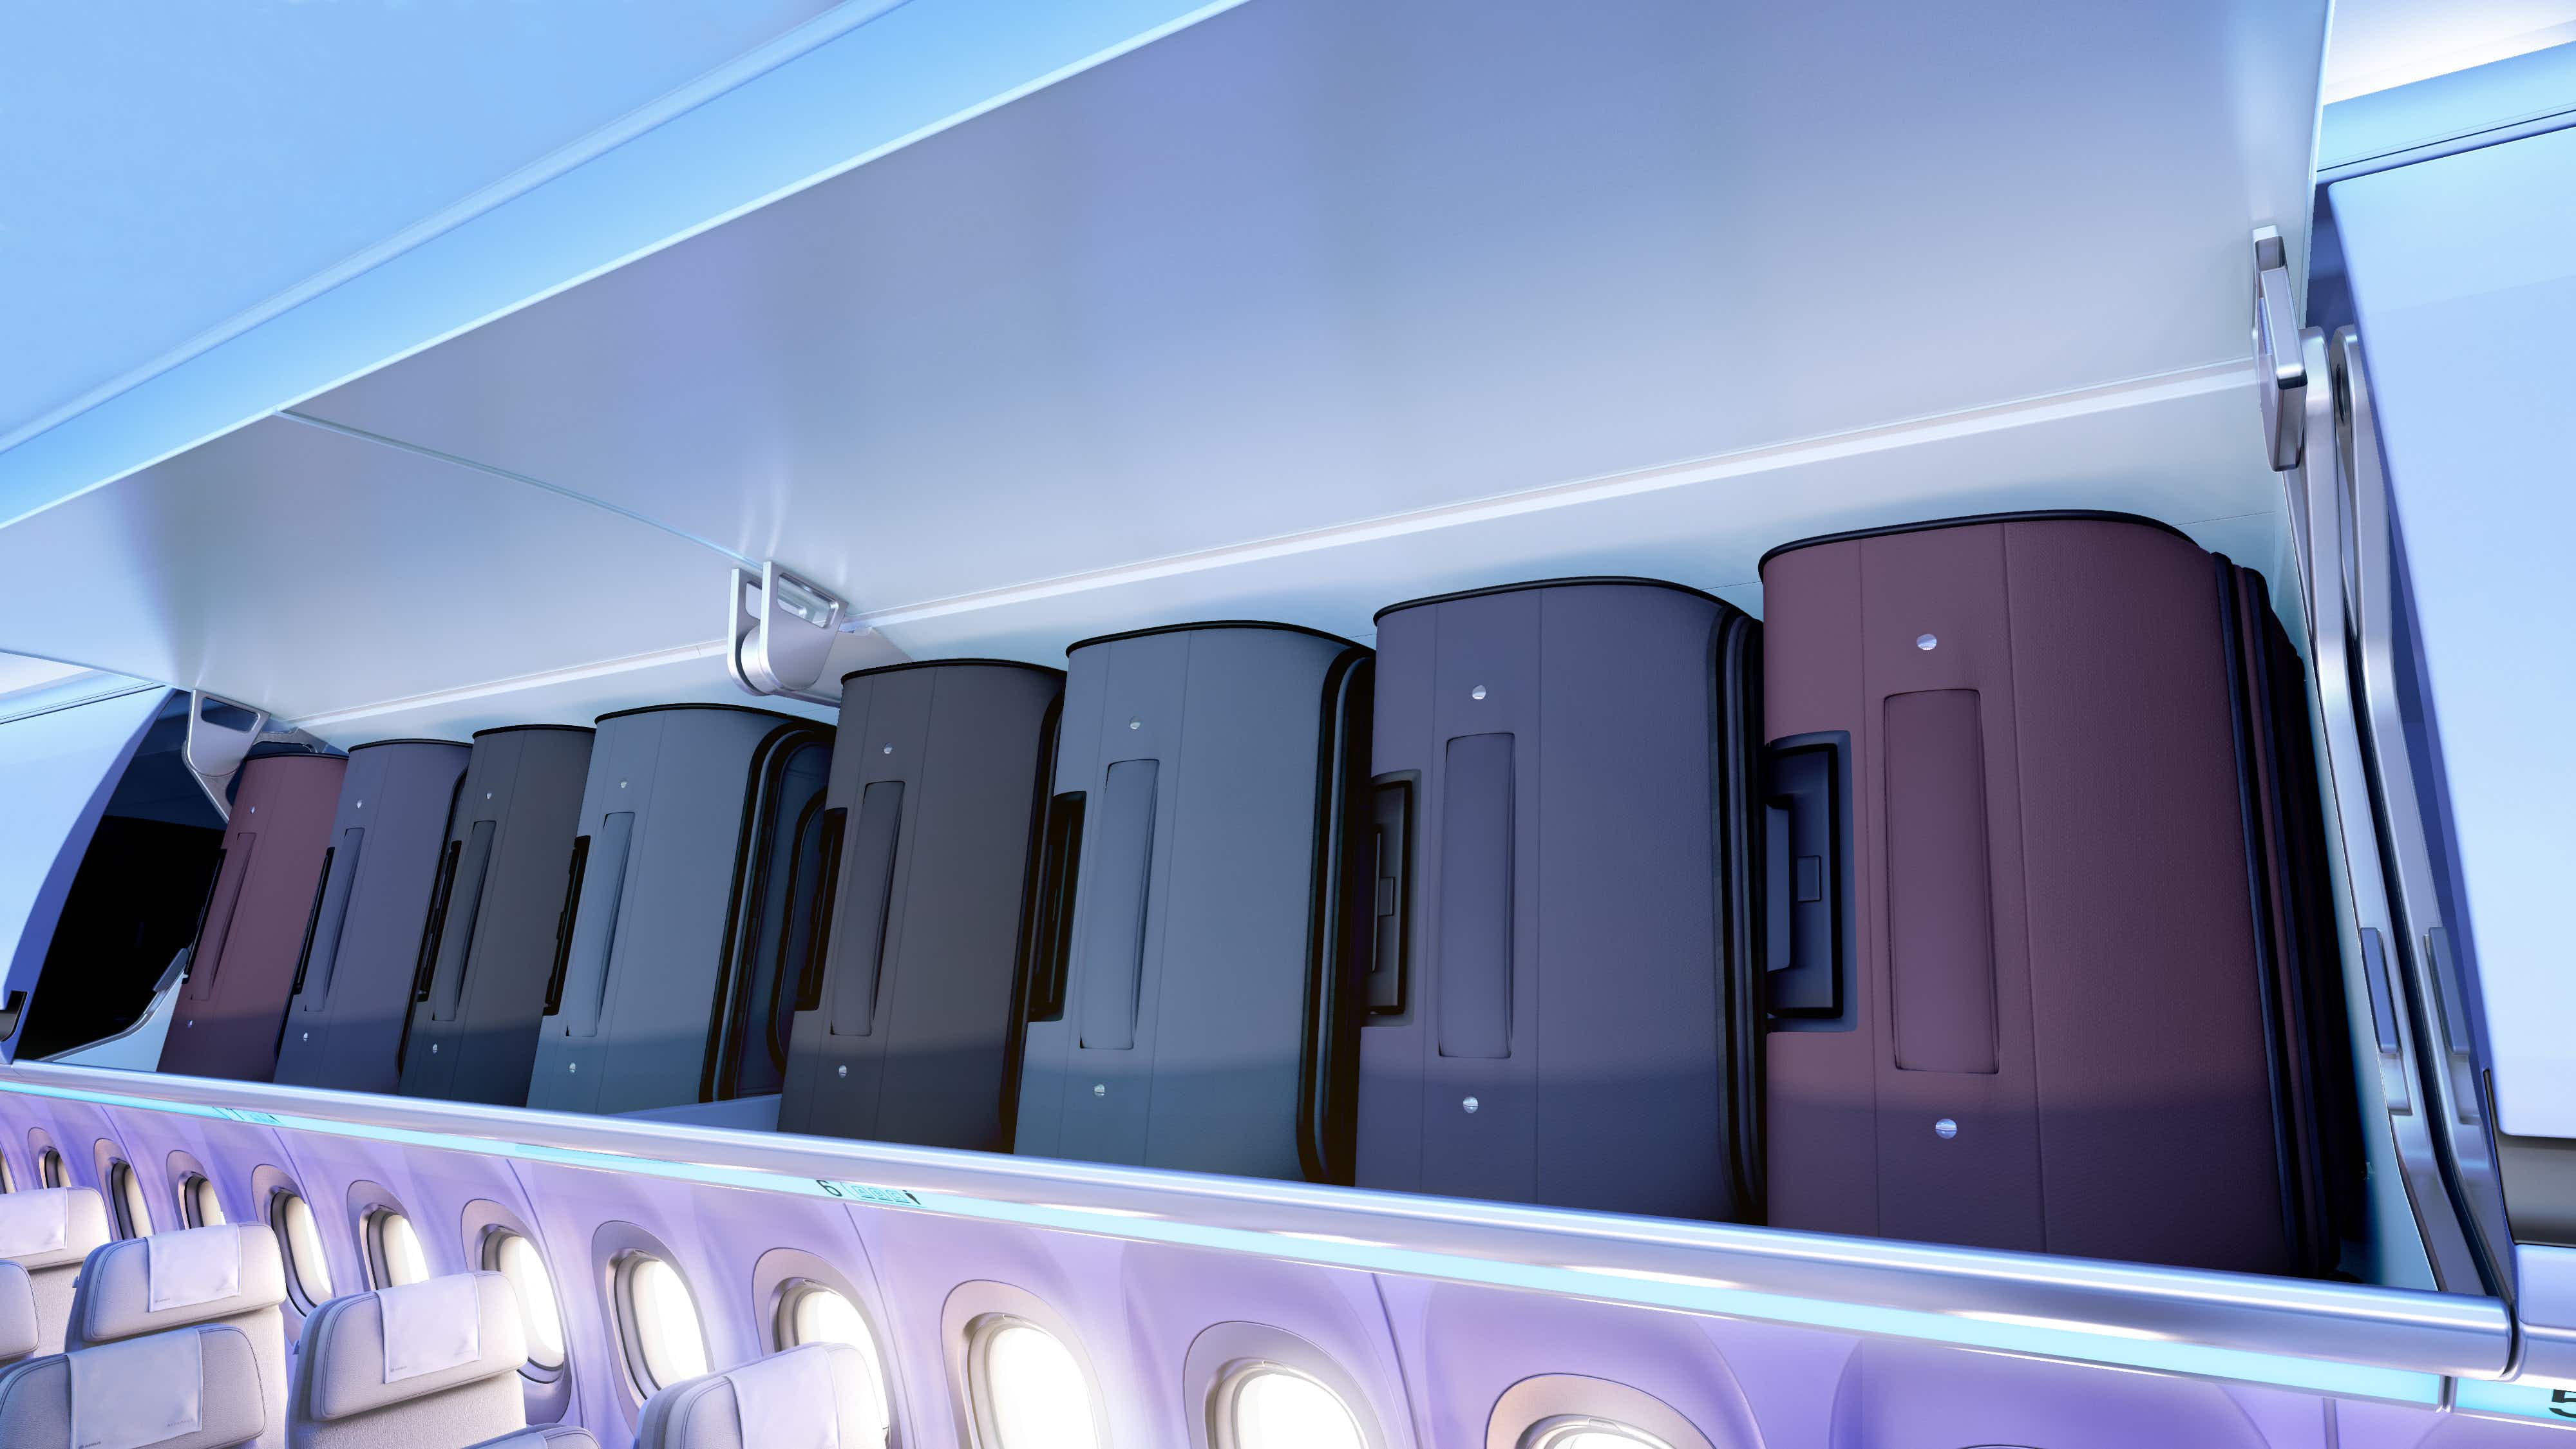 The rush for overhead space will soon be over on some of this US airline's fleet